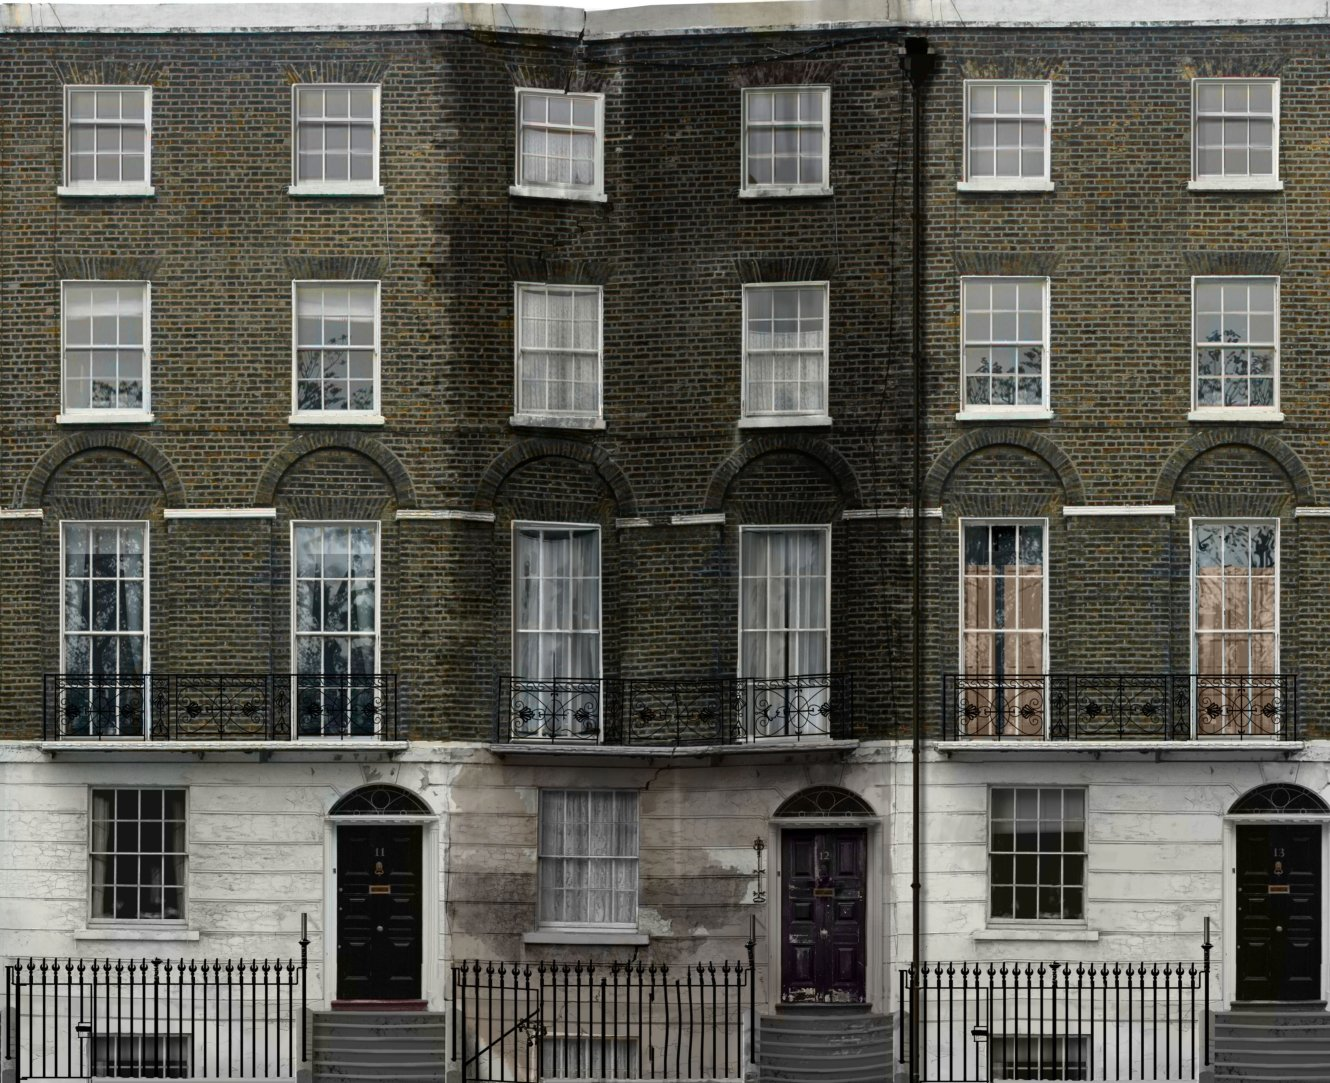 12 Grimmauld Place | Harry Potter Wiki | FANDOM powered by Wikia